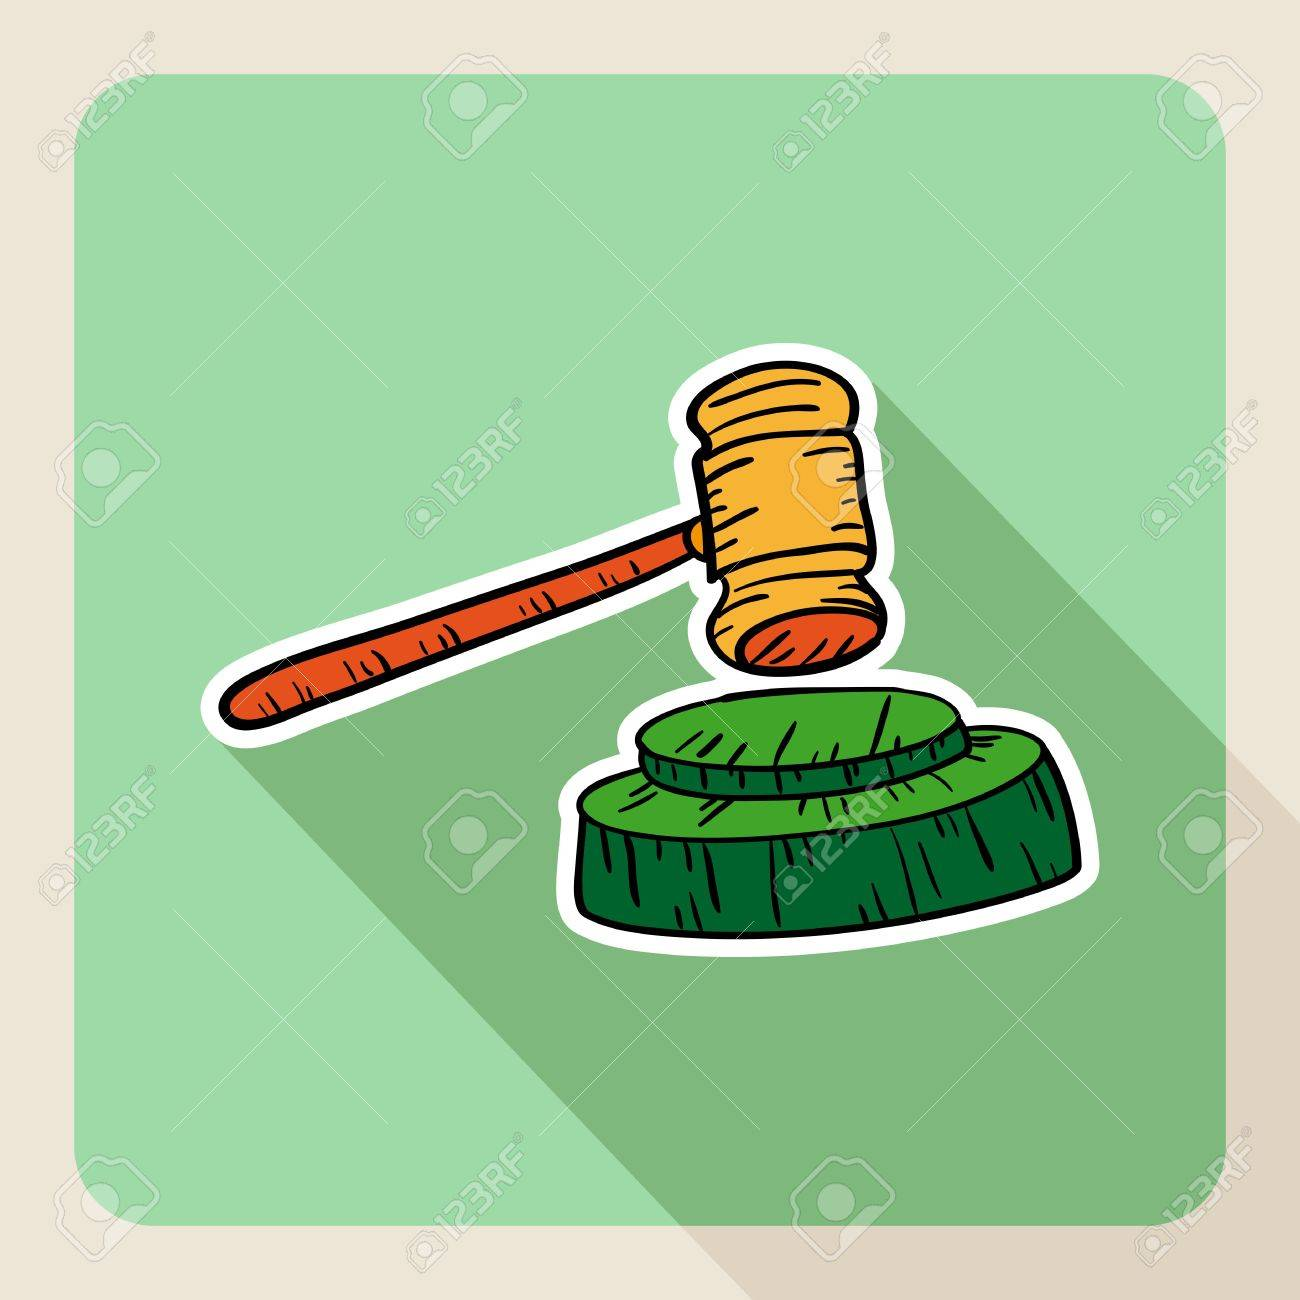 Real state property auction hammer hand drawn flat icon. Stock Vector - 21509530